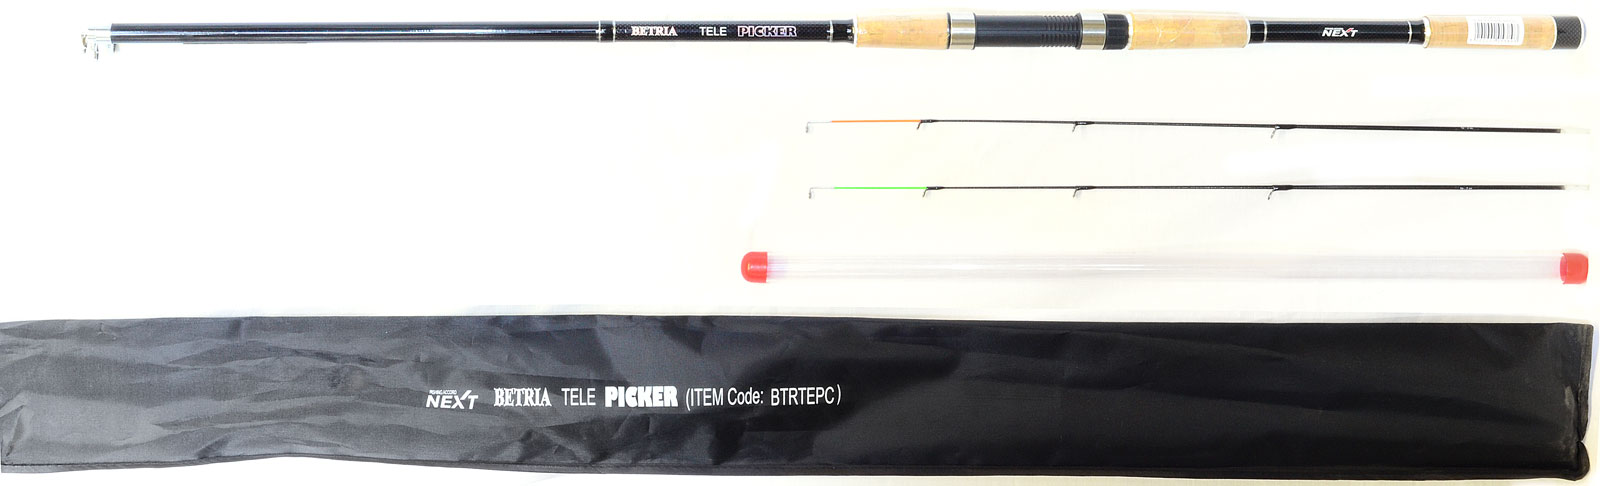 Удилища NEXT Fishing Accord BETRIA TELE PICKER